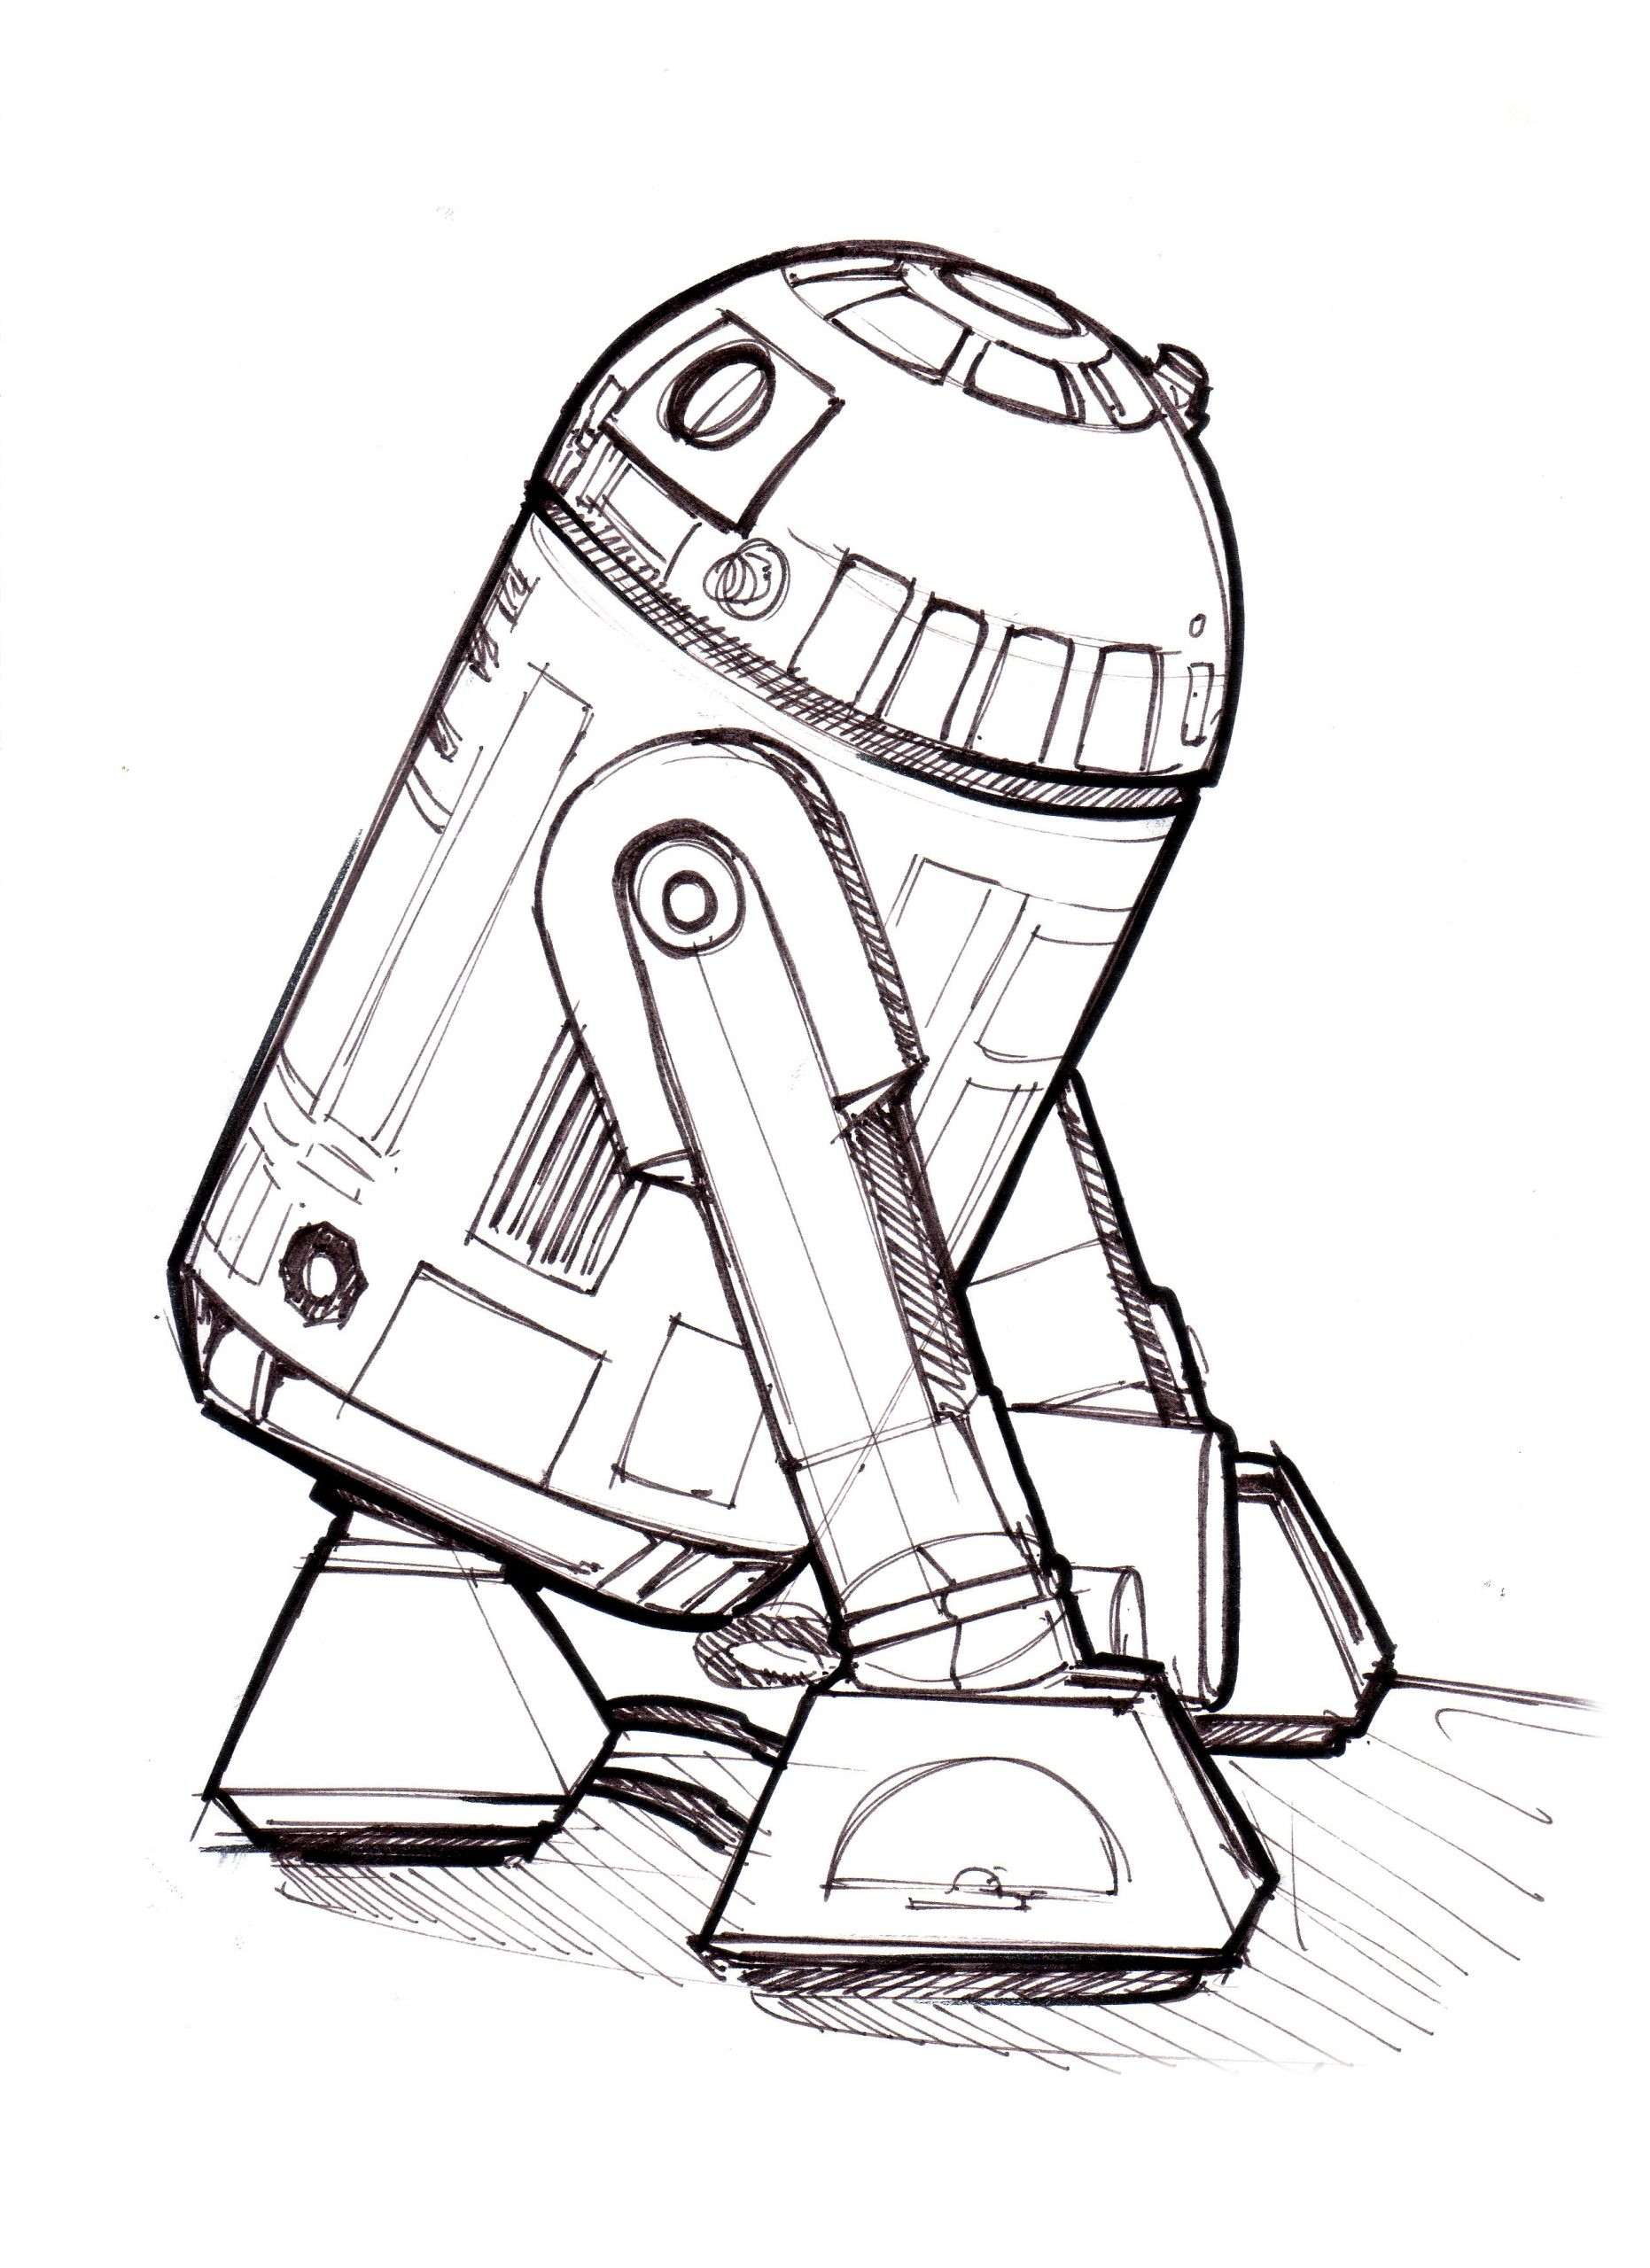 Coloring Pages : R2d2 Sketch Coloring Page Splendi Pages Best For Kids To  Print 48 Splendi R2d2 Coloring Pages ~ Off-The Wall ATL